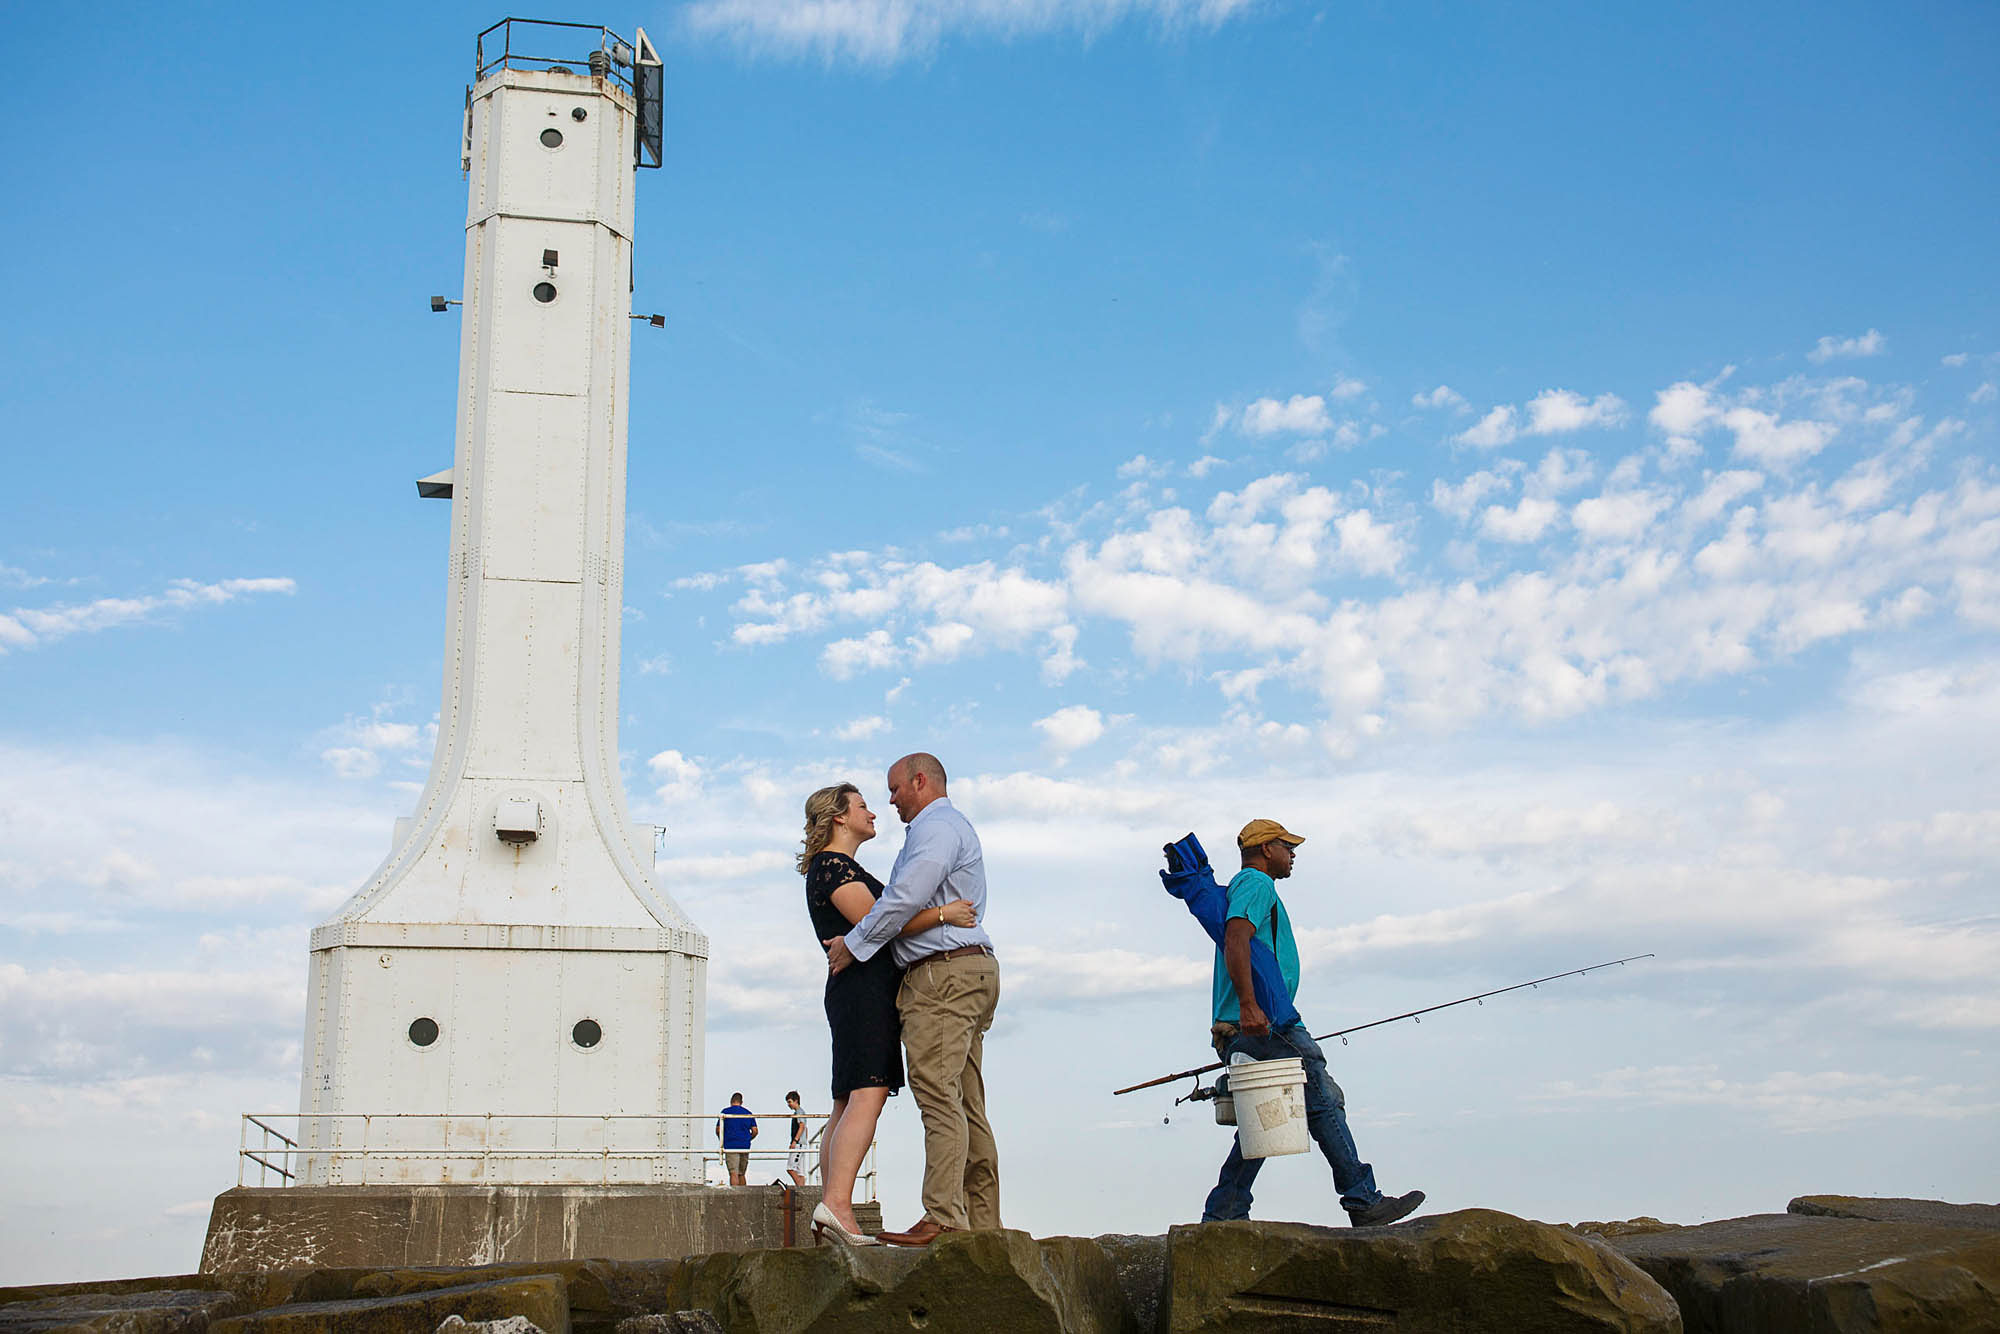 A picture of an engaged couple standing on a stone wall under a bright blue sky with puffy clouds and a crumbling white lighthouse in the background on the left and a fisherman walking out of the picture in the background on the right.